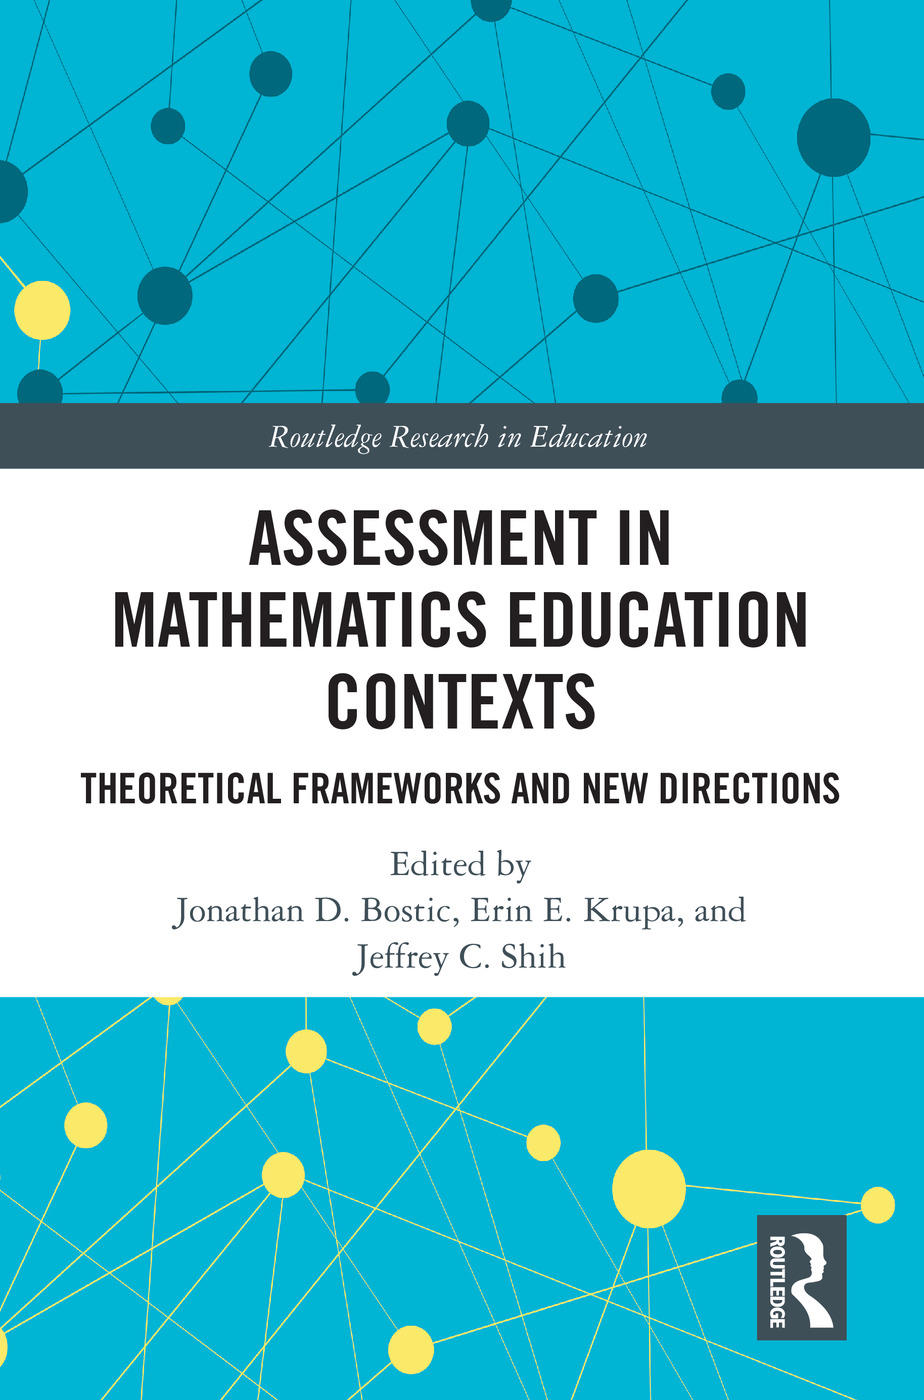 Assessment in Mathematics Education Contexts: Theoretical Frameworks and New Directions book cover